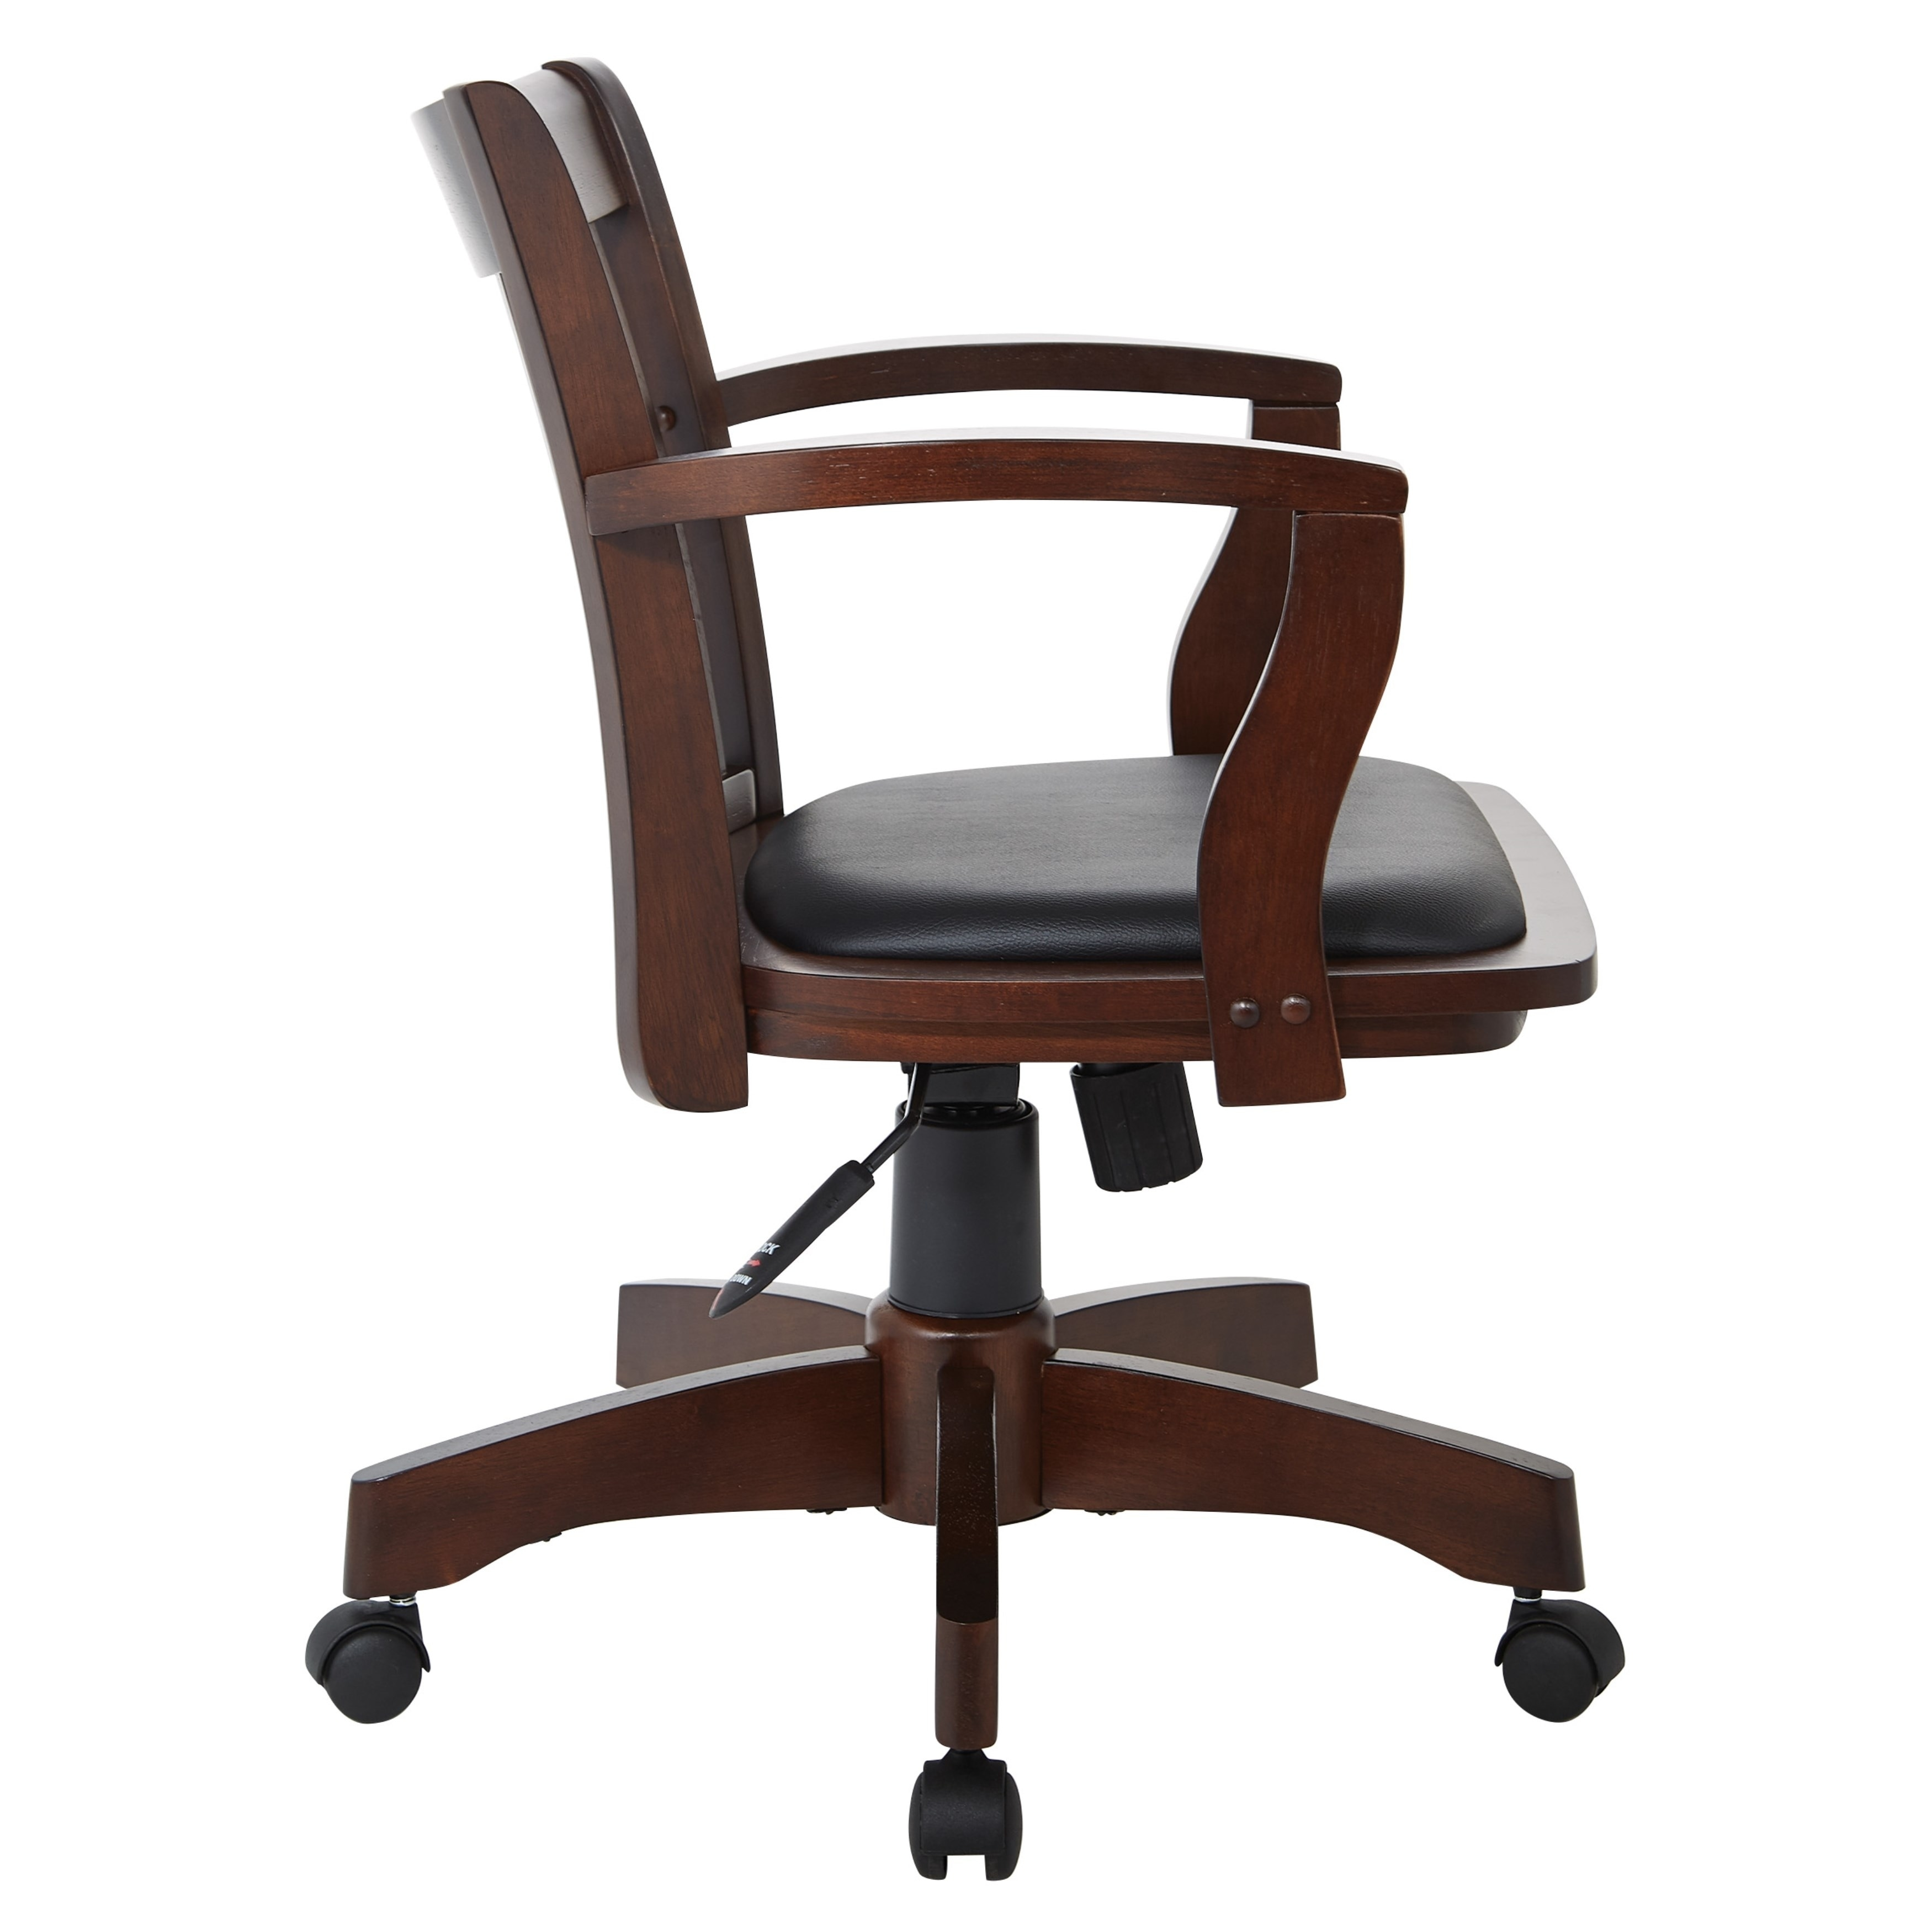 Osp Home Furnishings Deluxe Wood Bankers Chair With Vinyl Padded Seat In Espresso Finish And Black Vinyl Fabric